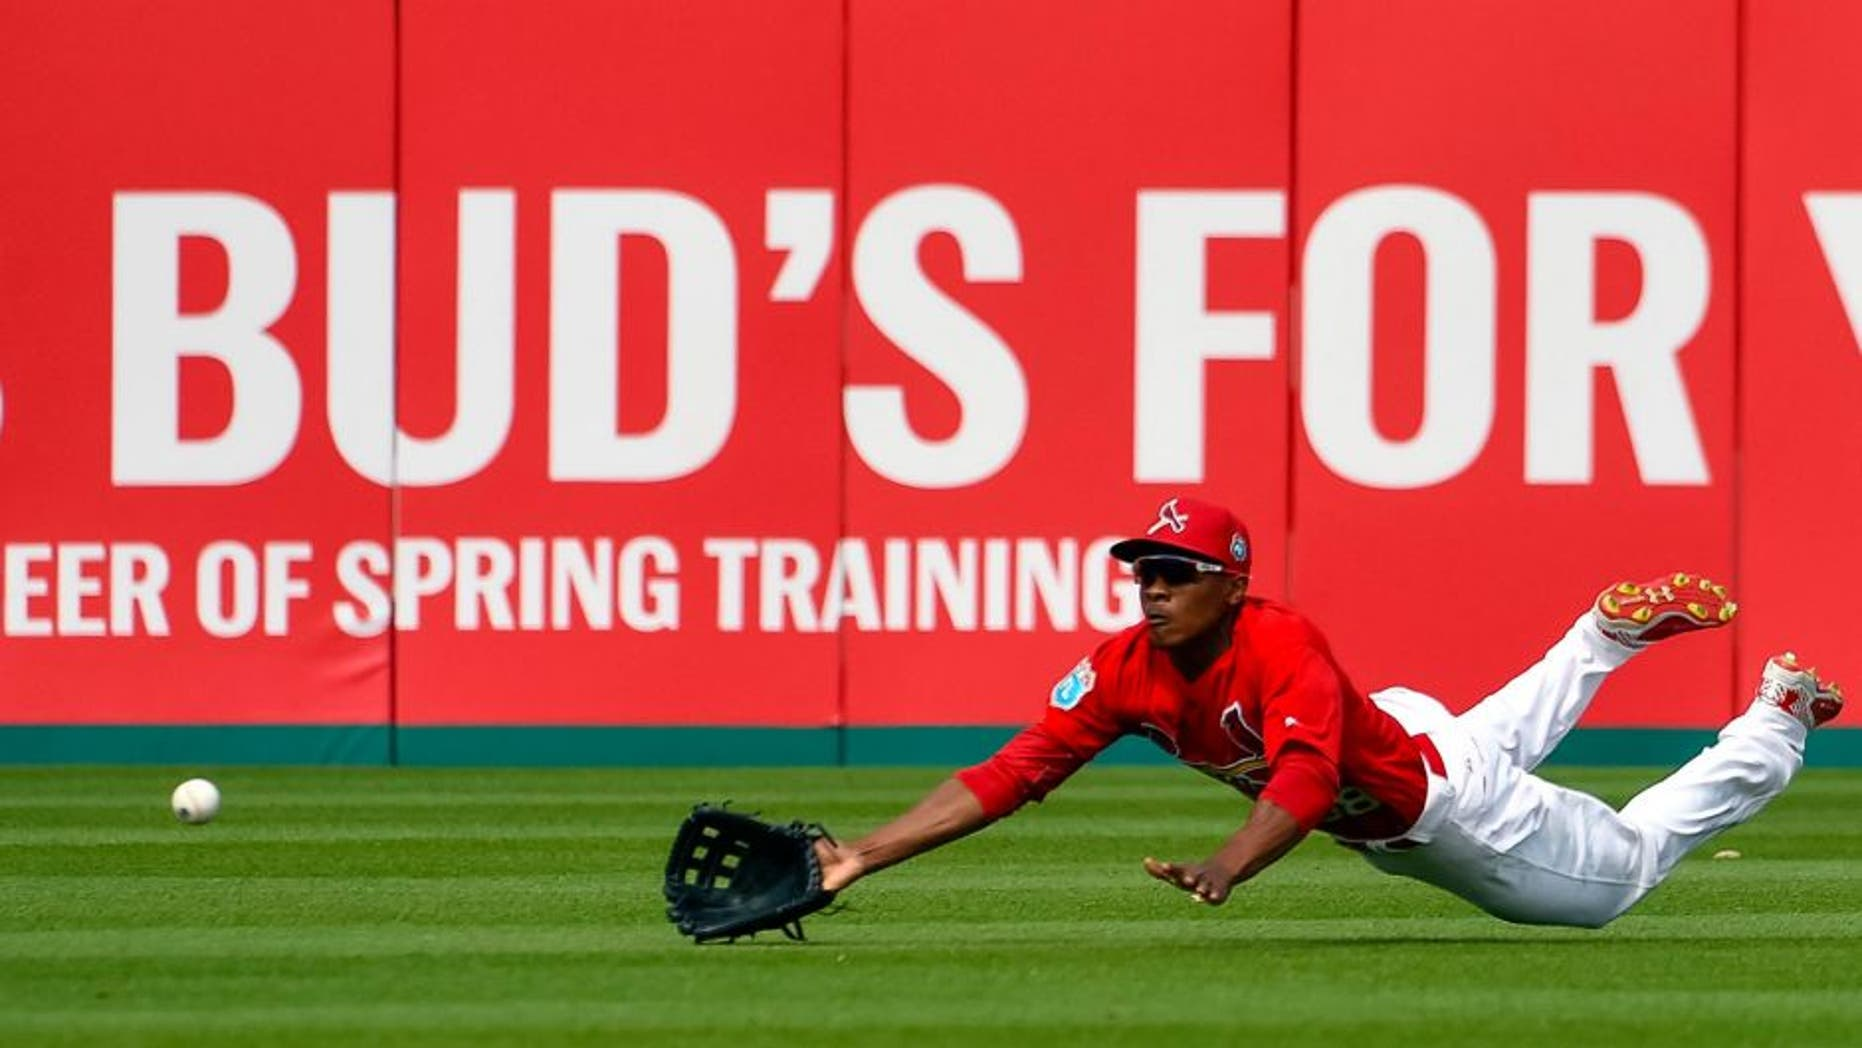 Mar 21, 2016; Jupiter, FL, USA; St. Louis Cardinals center fielder Magneuris Sierra (98) makes a diving attempt against the Boston Red Sox during the game at Roger Dean Stadium. The Red Sox defeated the Cardinals 4-3. Mandatory Credit: Scott Rovak-USA TODAY Sports